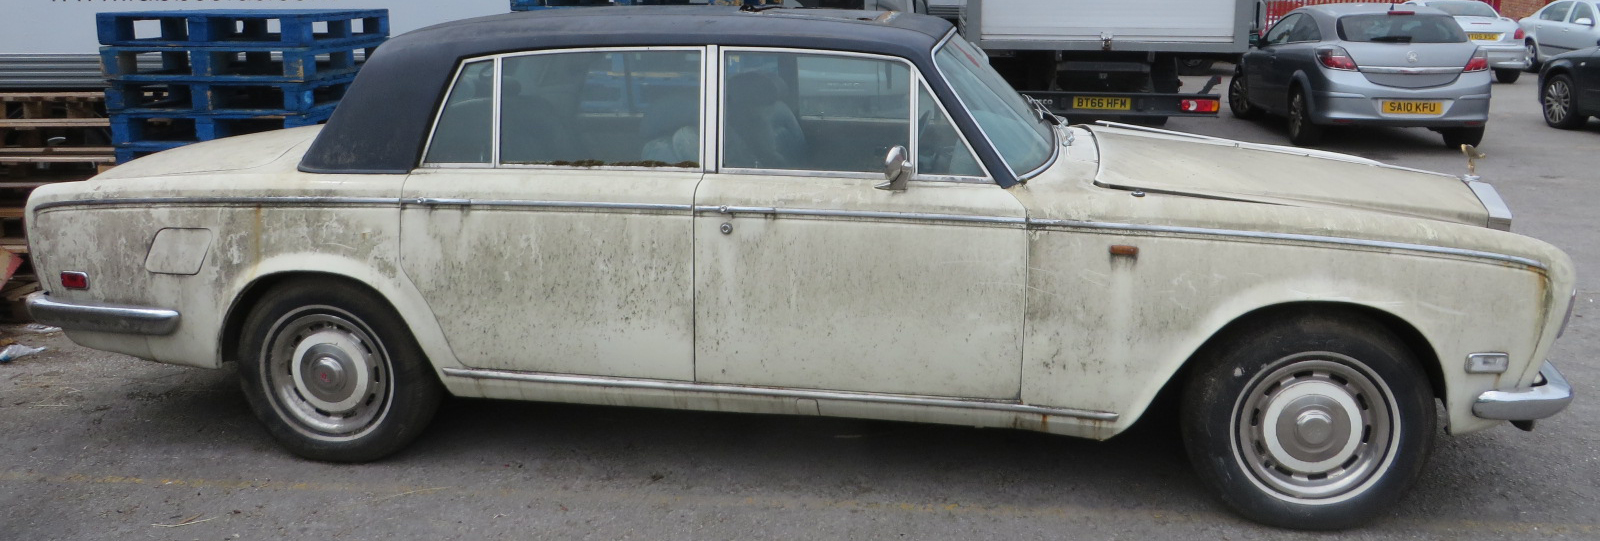 1975 Rolls Royce Silver Shadow - Side View